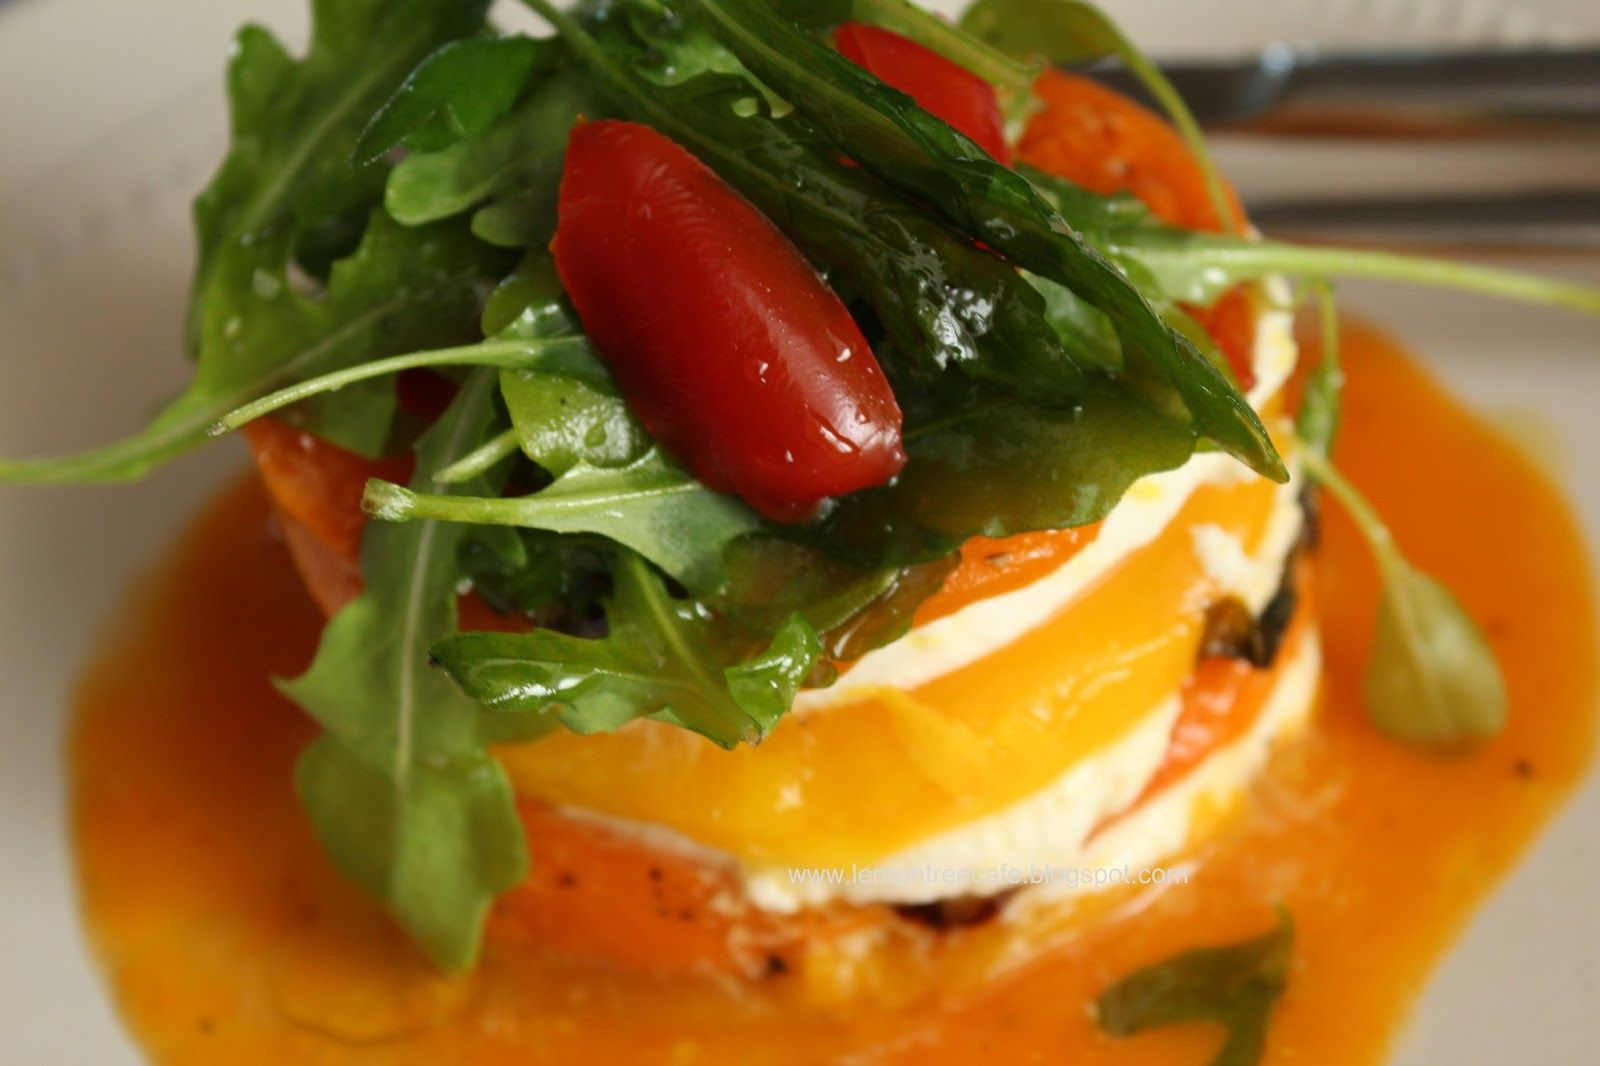 caprese salad of mozzarella, yellow tomatoes and yellow roasted peppers